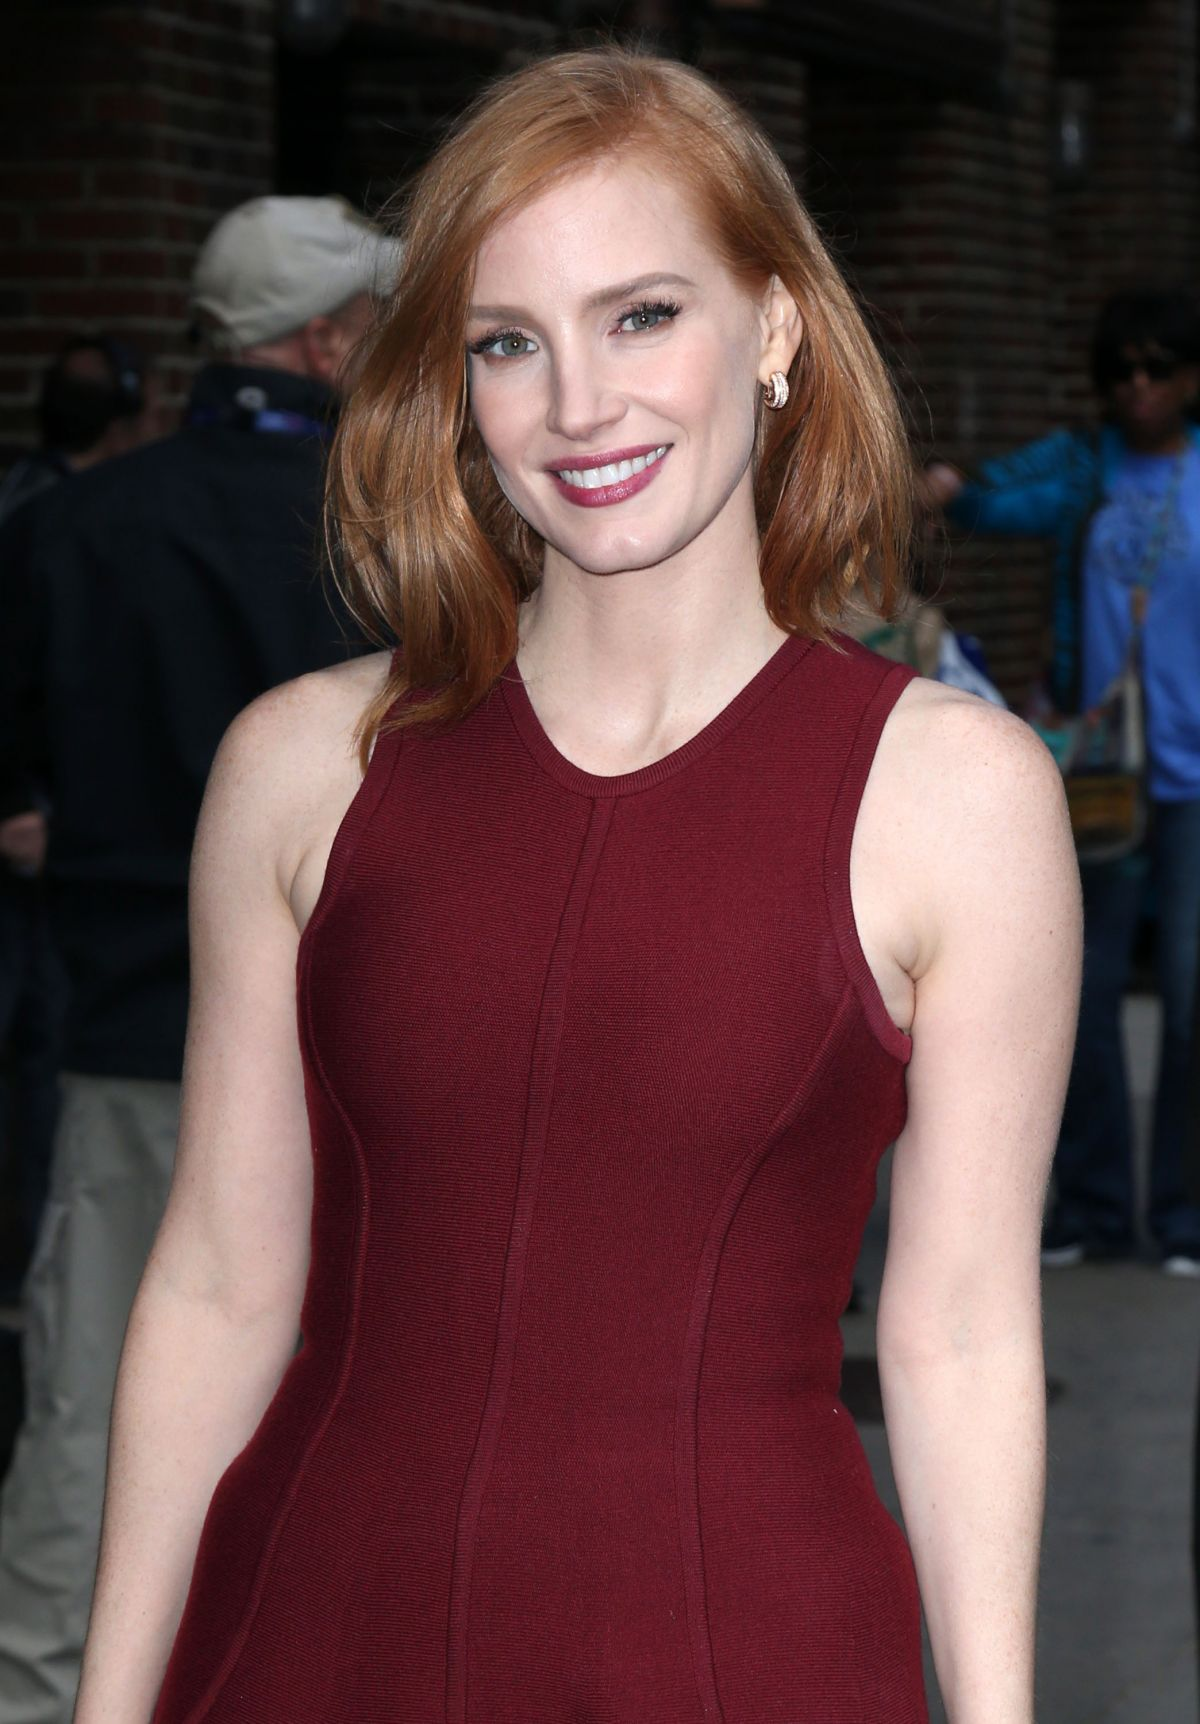 Jessica Chastain Archives - Page 5 of 21 - HawtCelebs ... Jessica Chastain